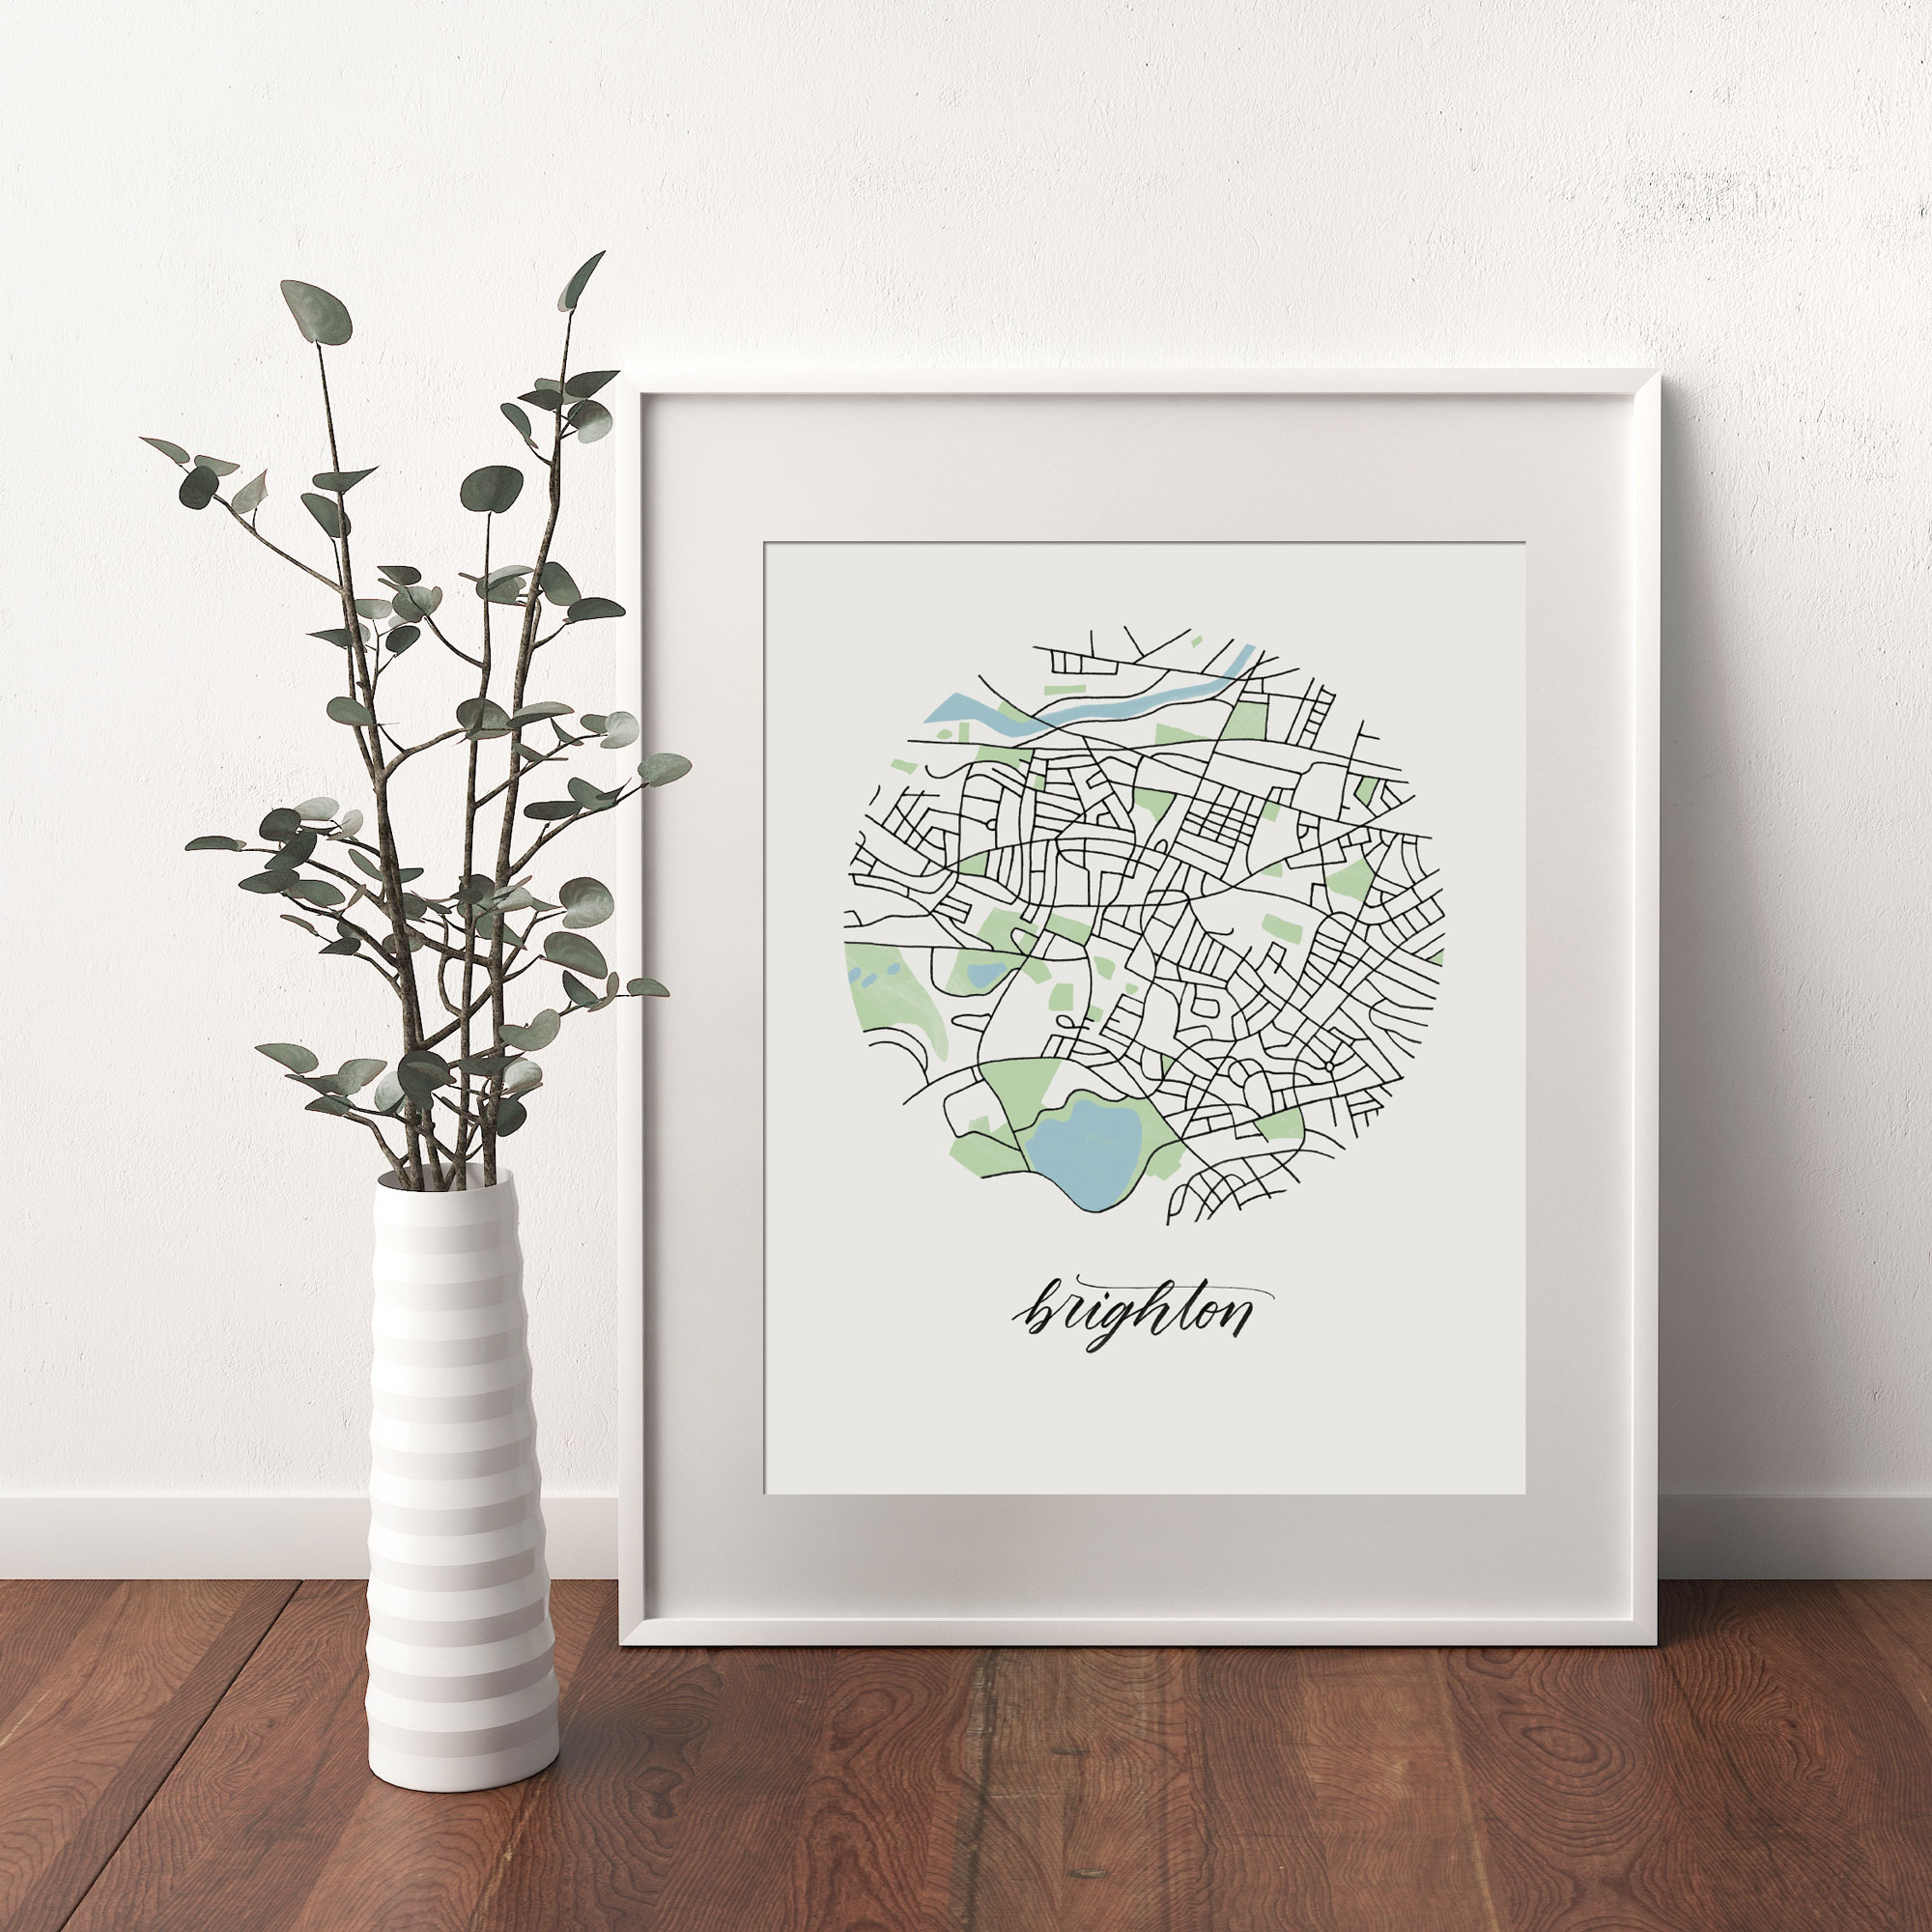 Brighton, Boston Map print framed and leaning on white wall next to dried leaves in a vase